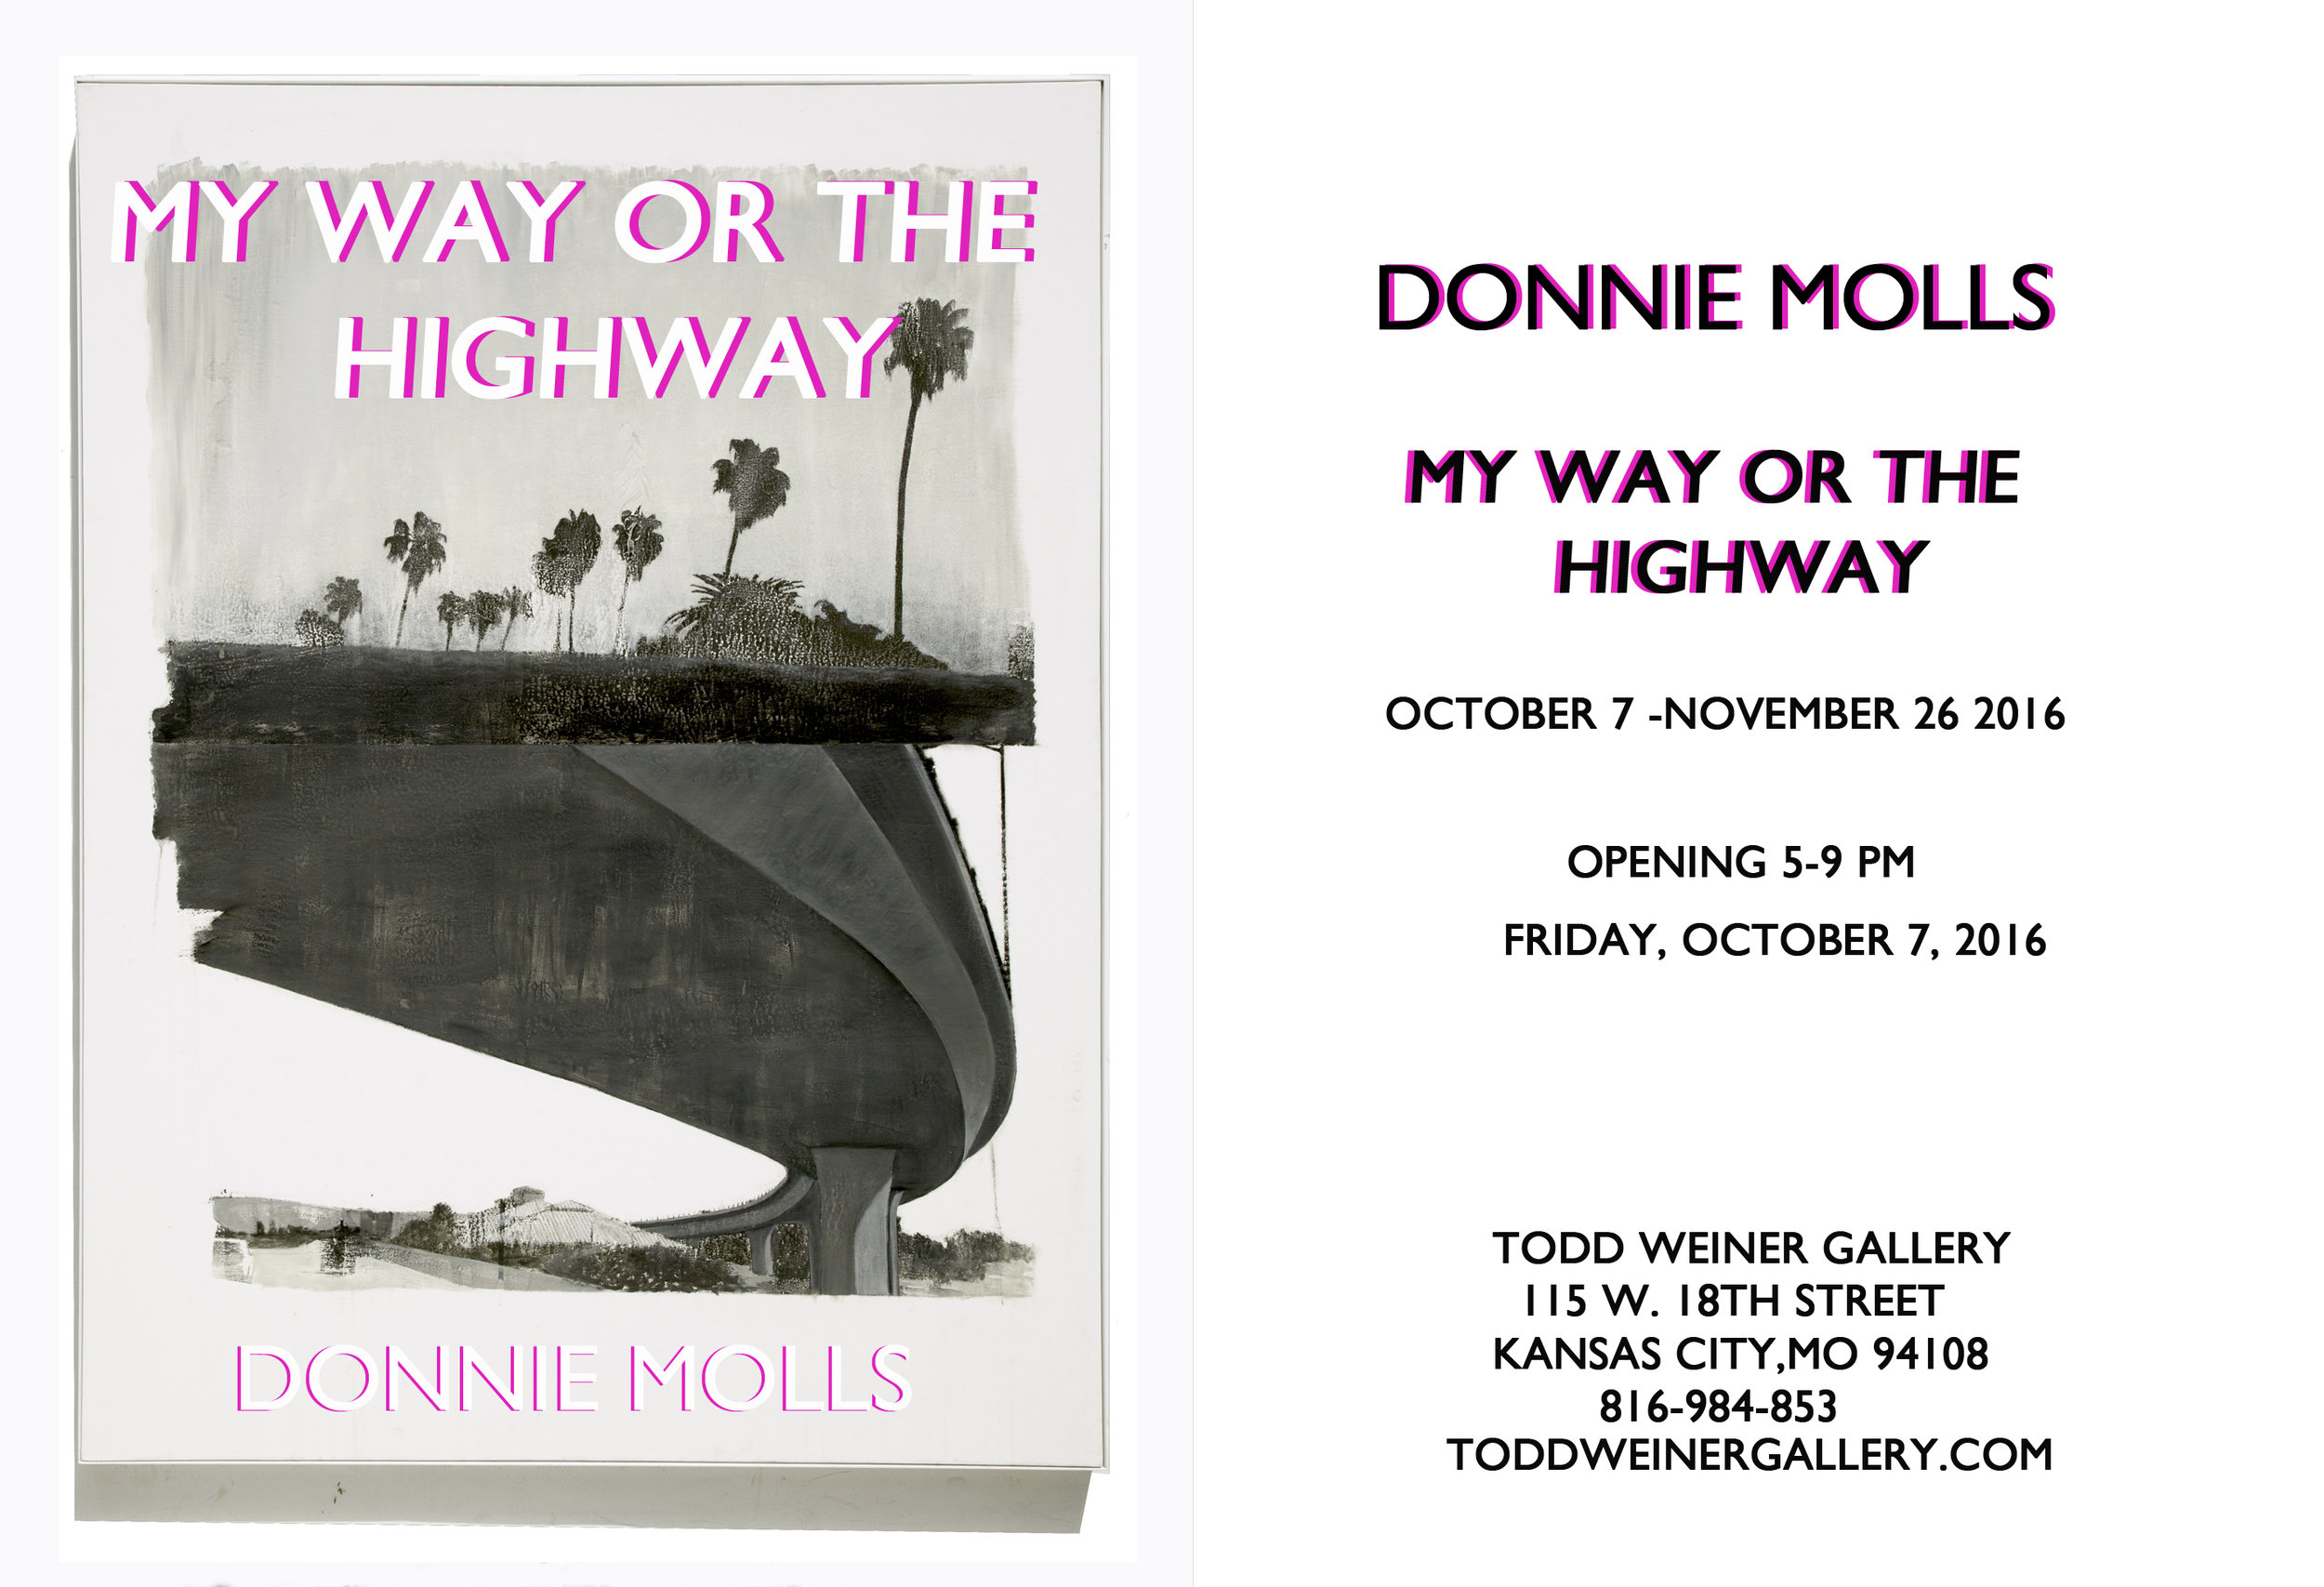 Donnie Molls - My Way or the Highway - October 2016